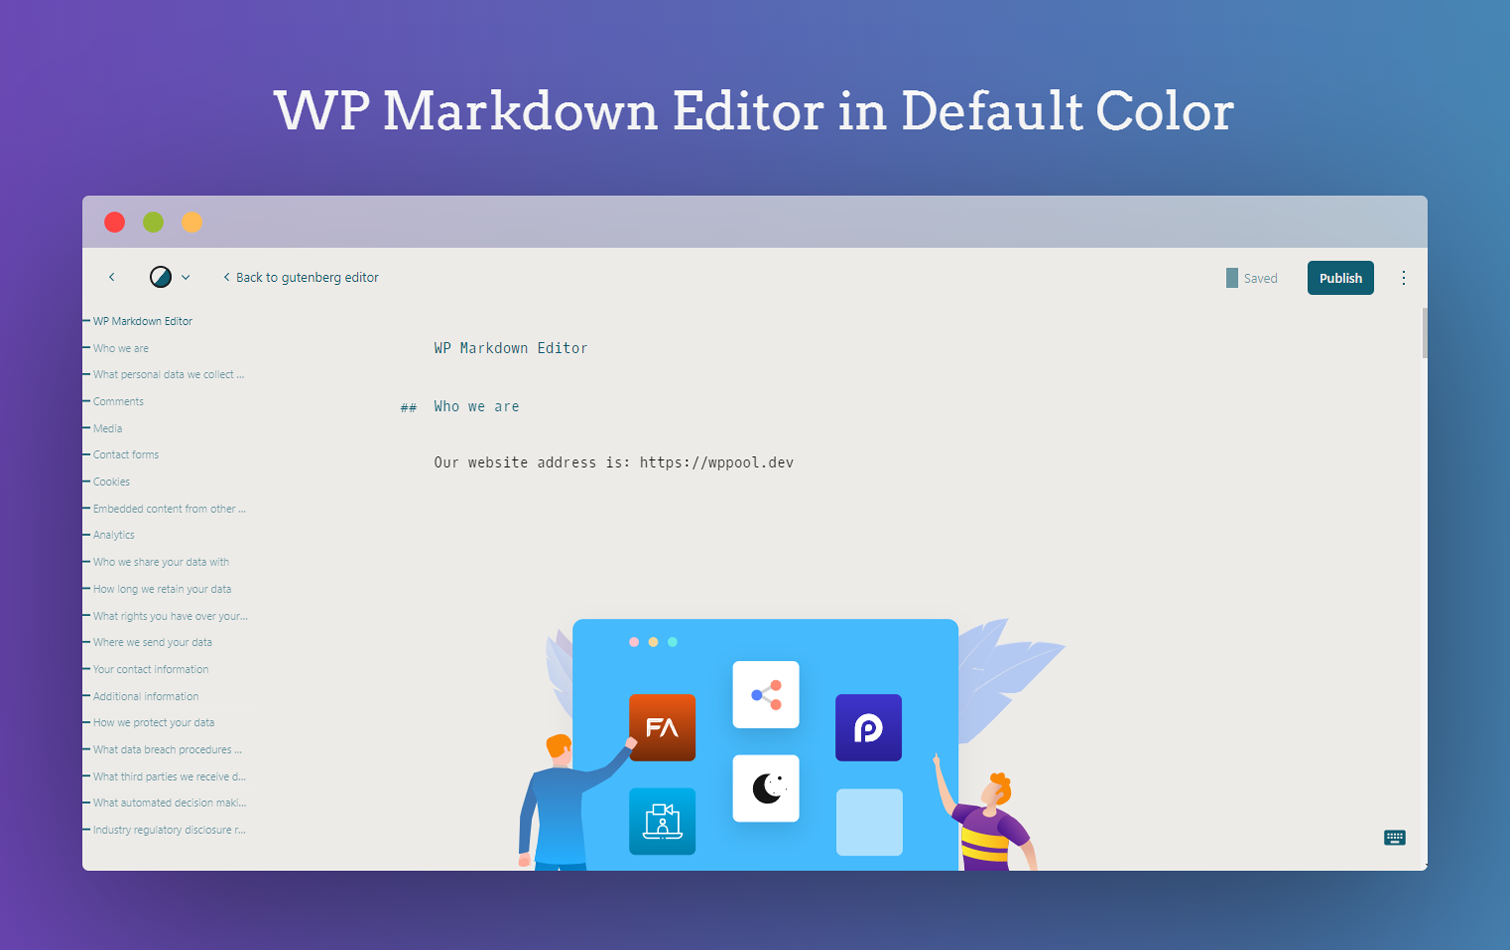 WP Markdown Editor (Formerly Dark Mode)